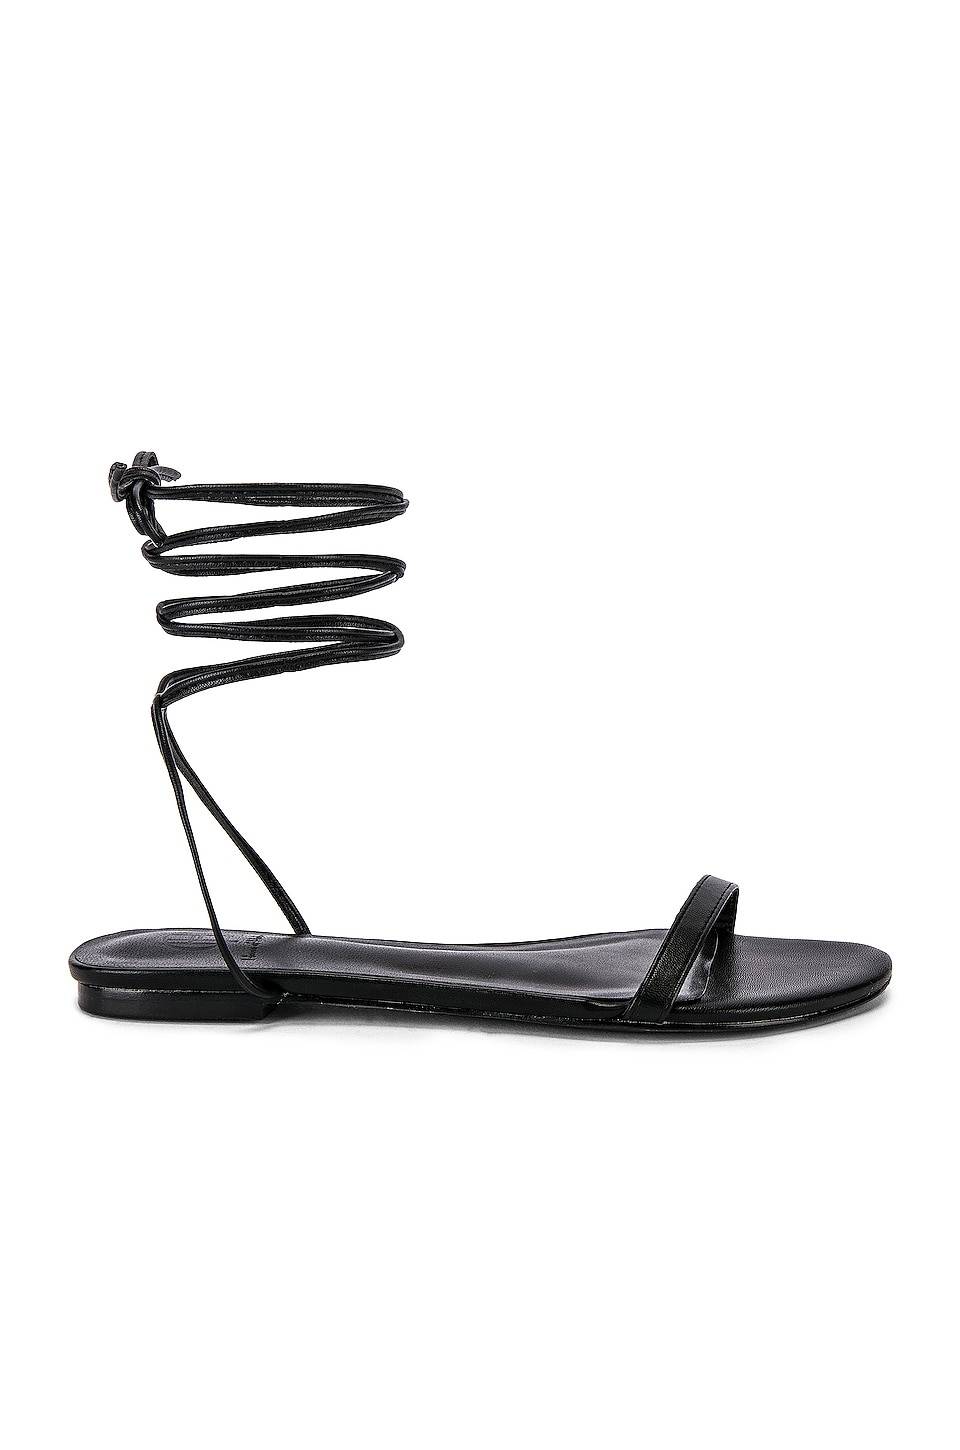 House of Harlow 1960 X REVOLVE Joni Sandal in Black